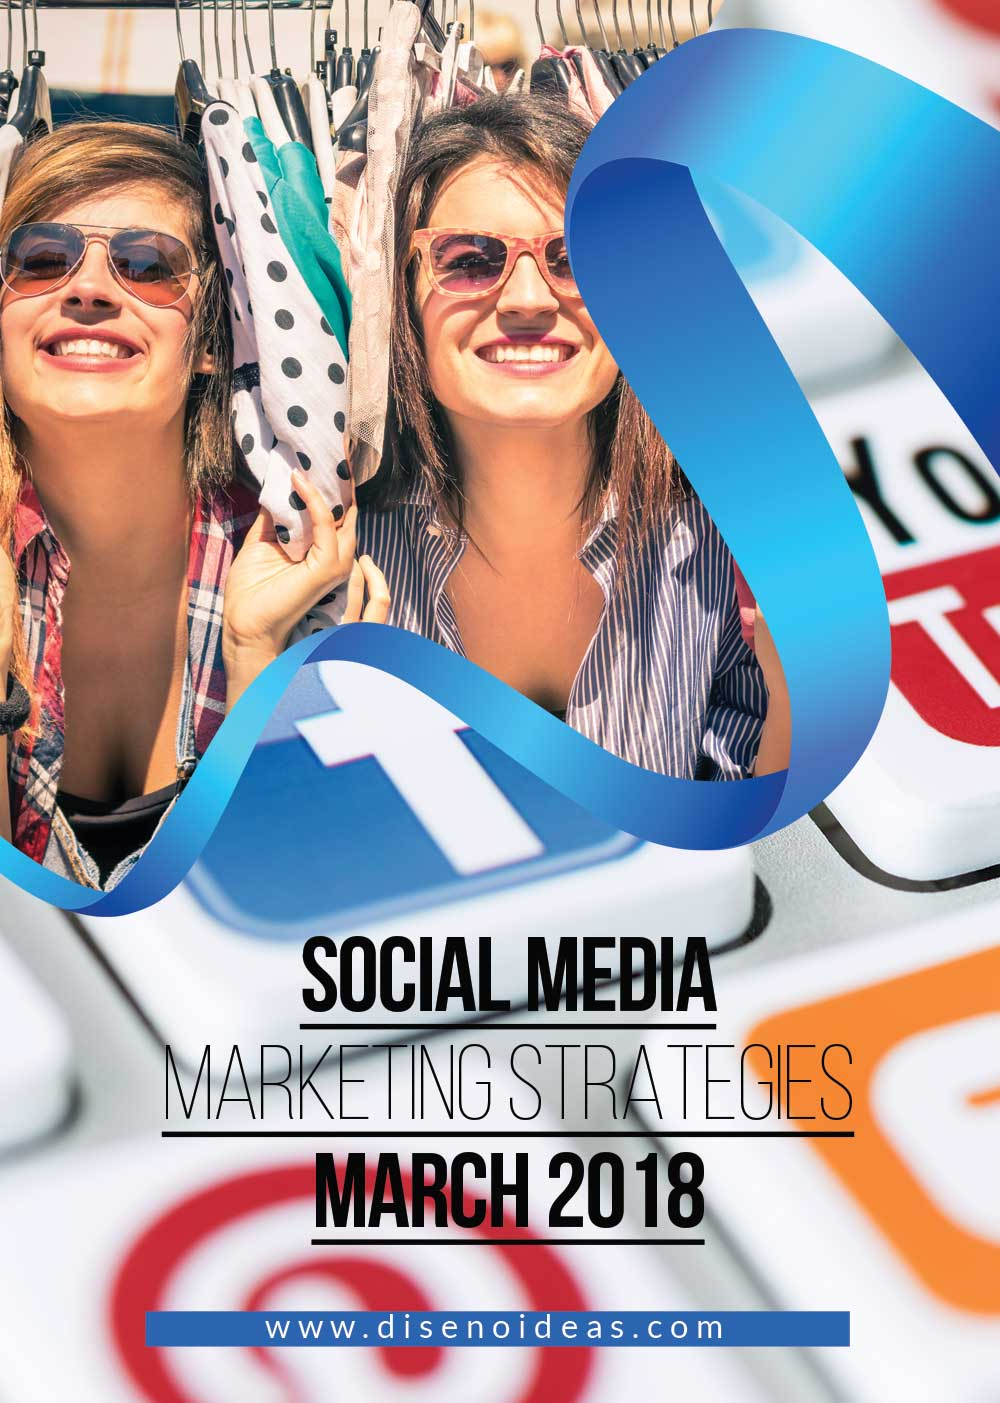 Social Media flyer posters & info graphic design